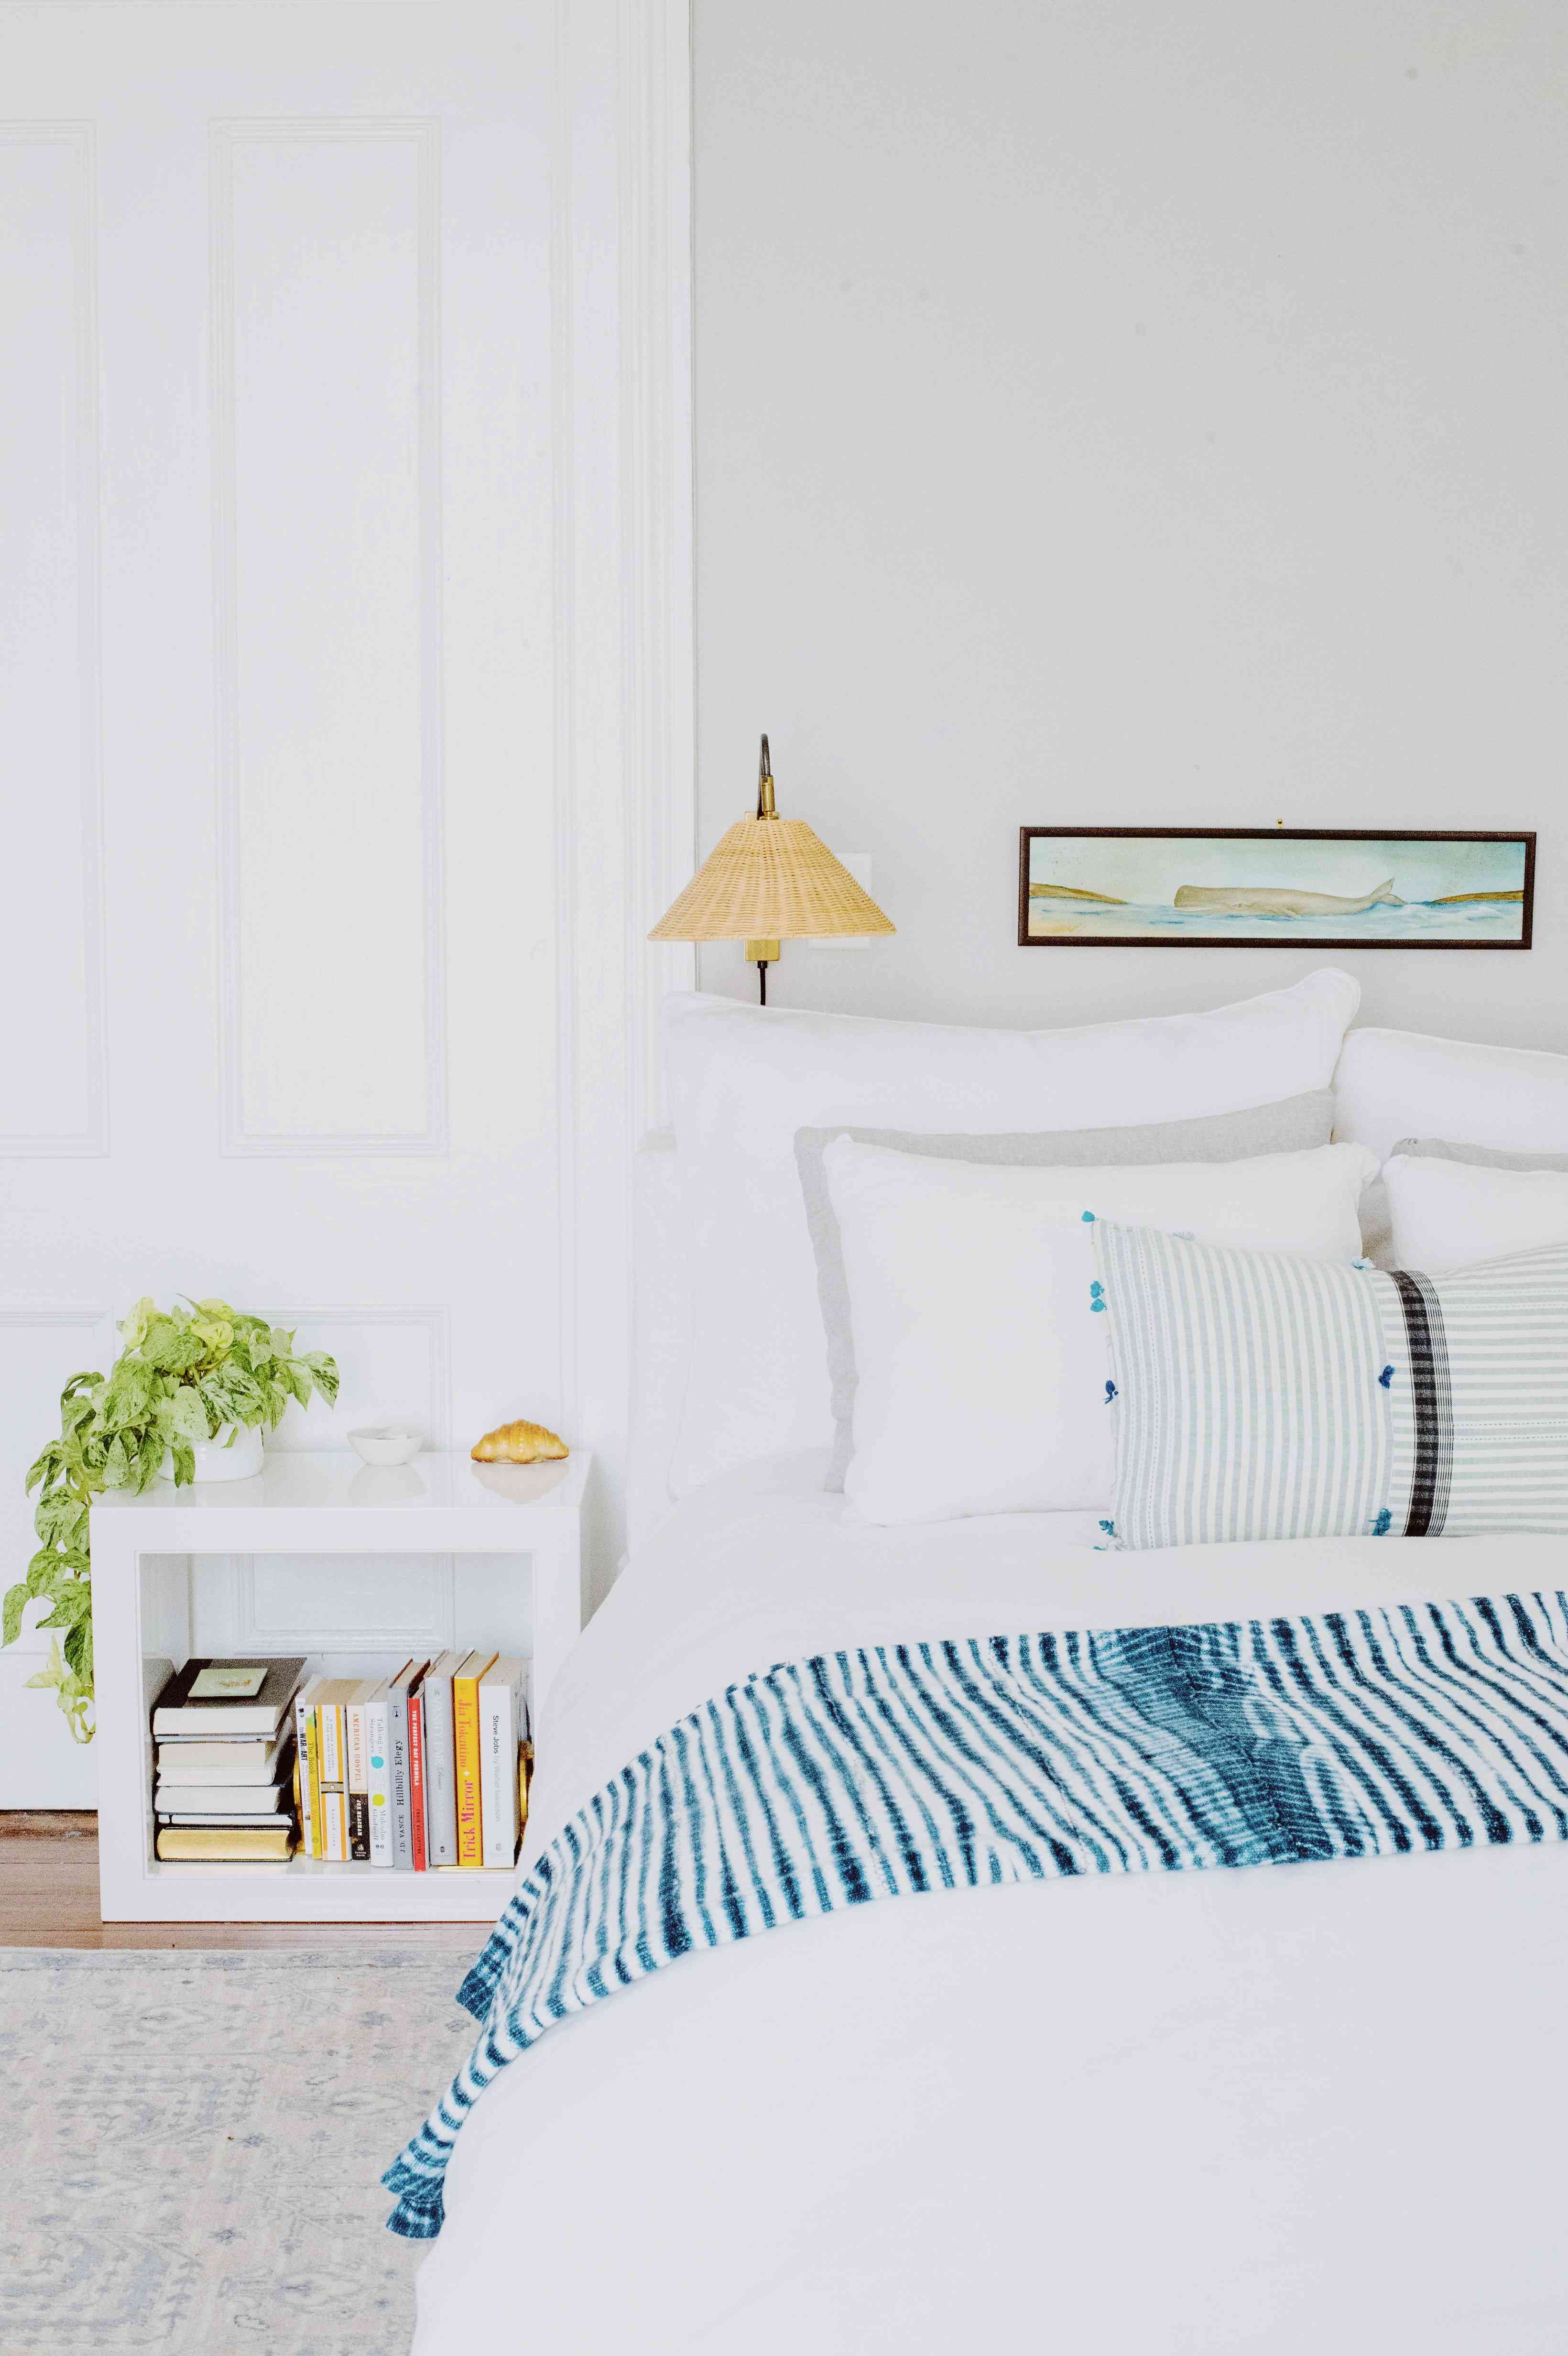 Amanda Greeley home tour - bedroom with white sheets and side table